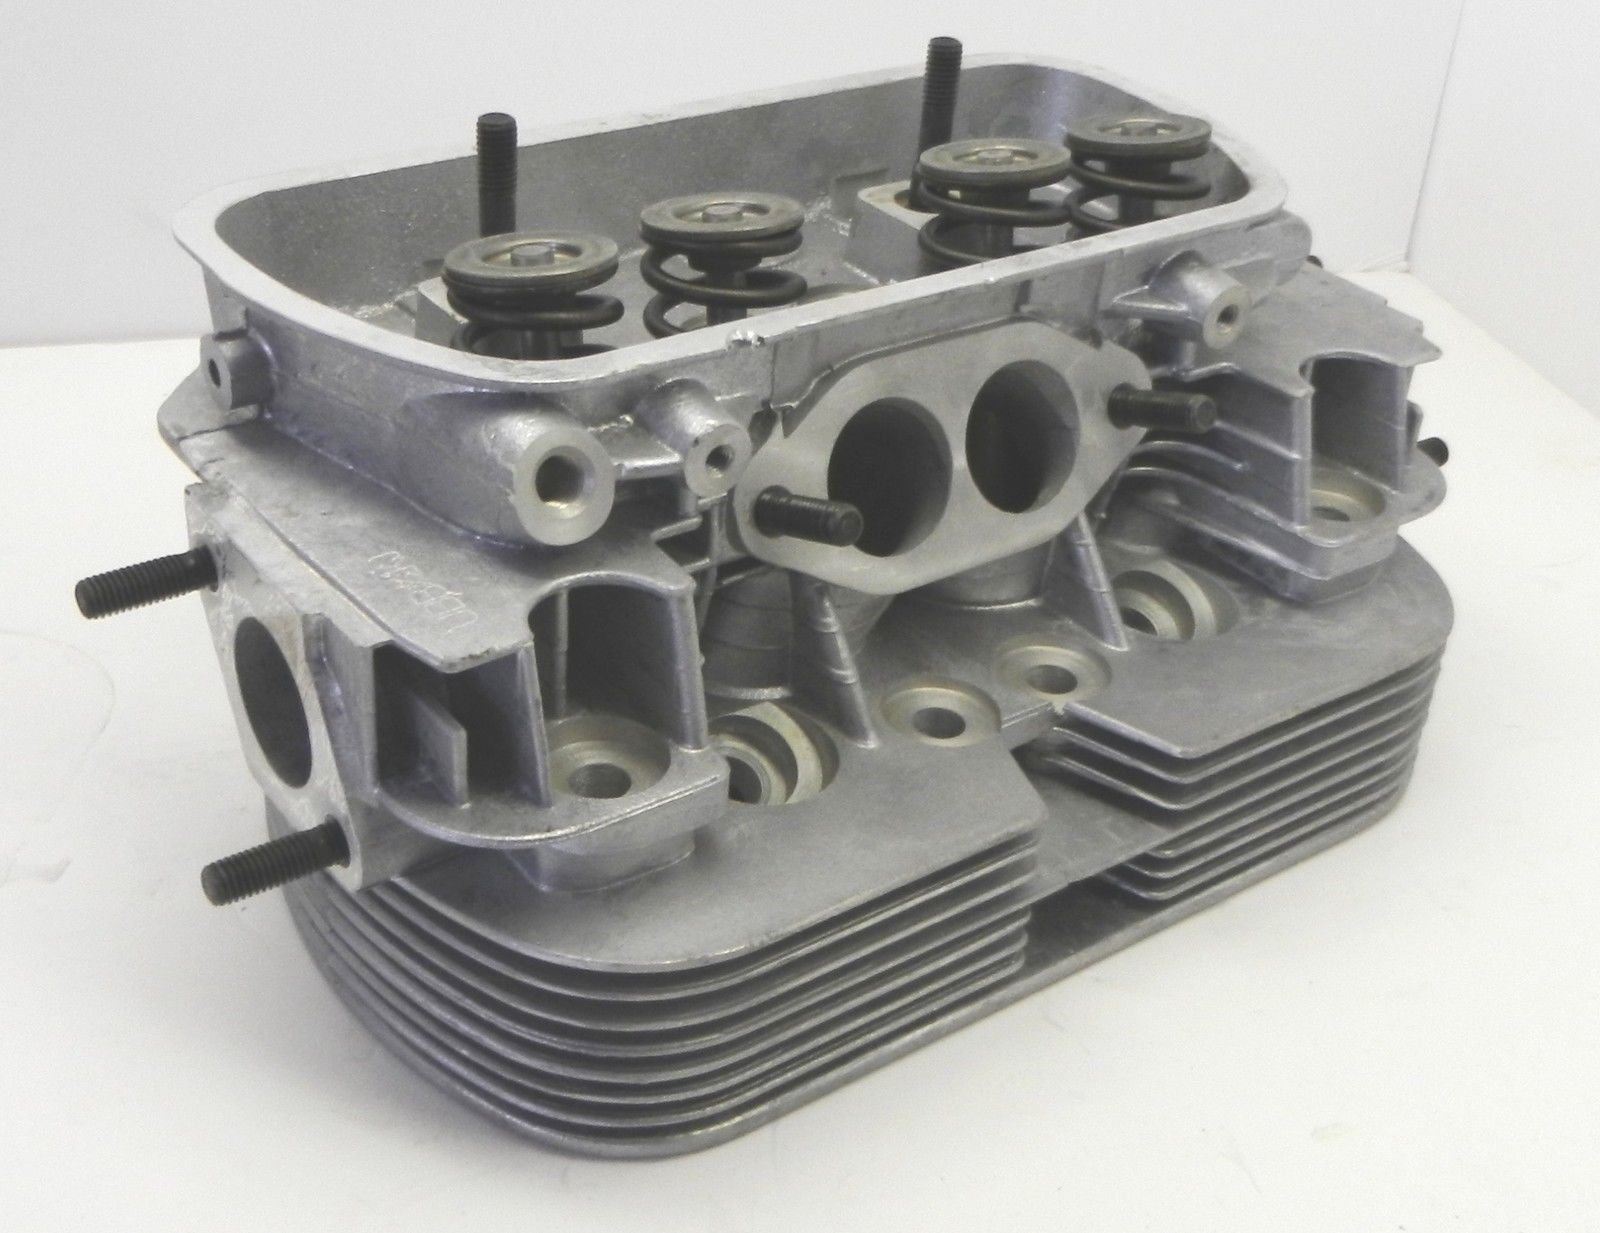 Amazon.com: 043101355 - New Complete VW Beetle Type 1 Cylinder Head Air  Cooled Volkswagen: Automotive